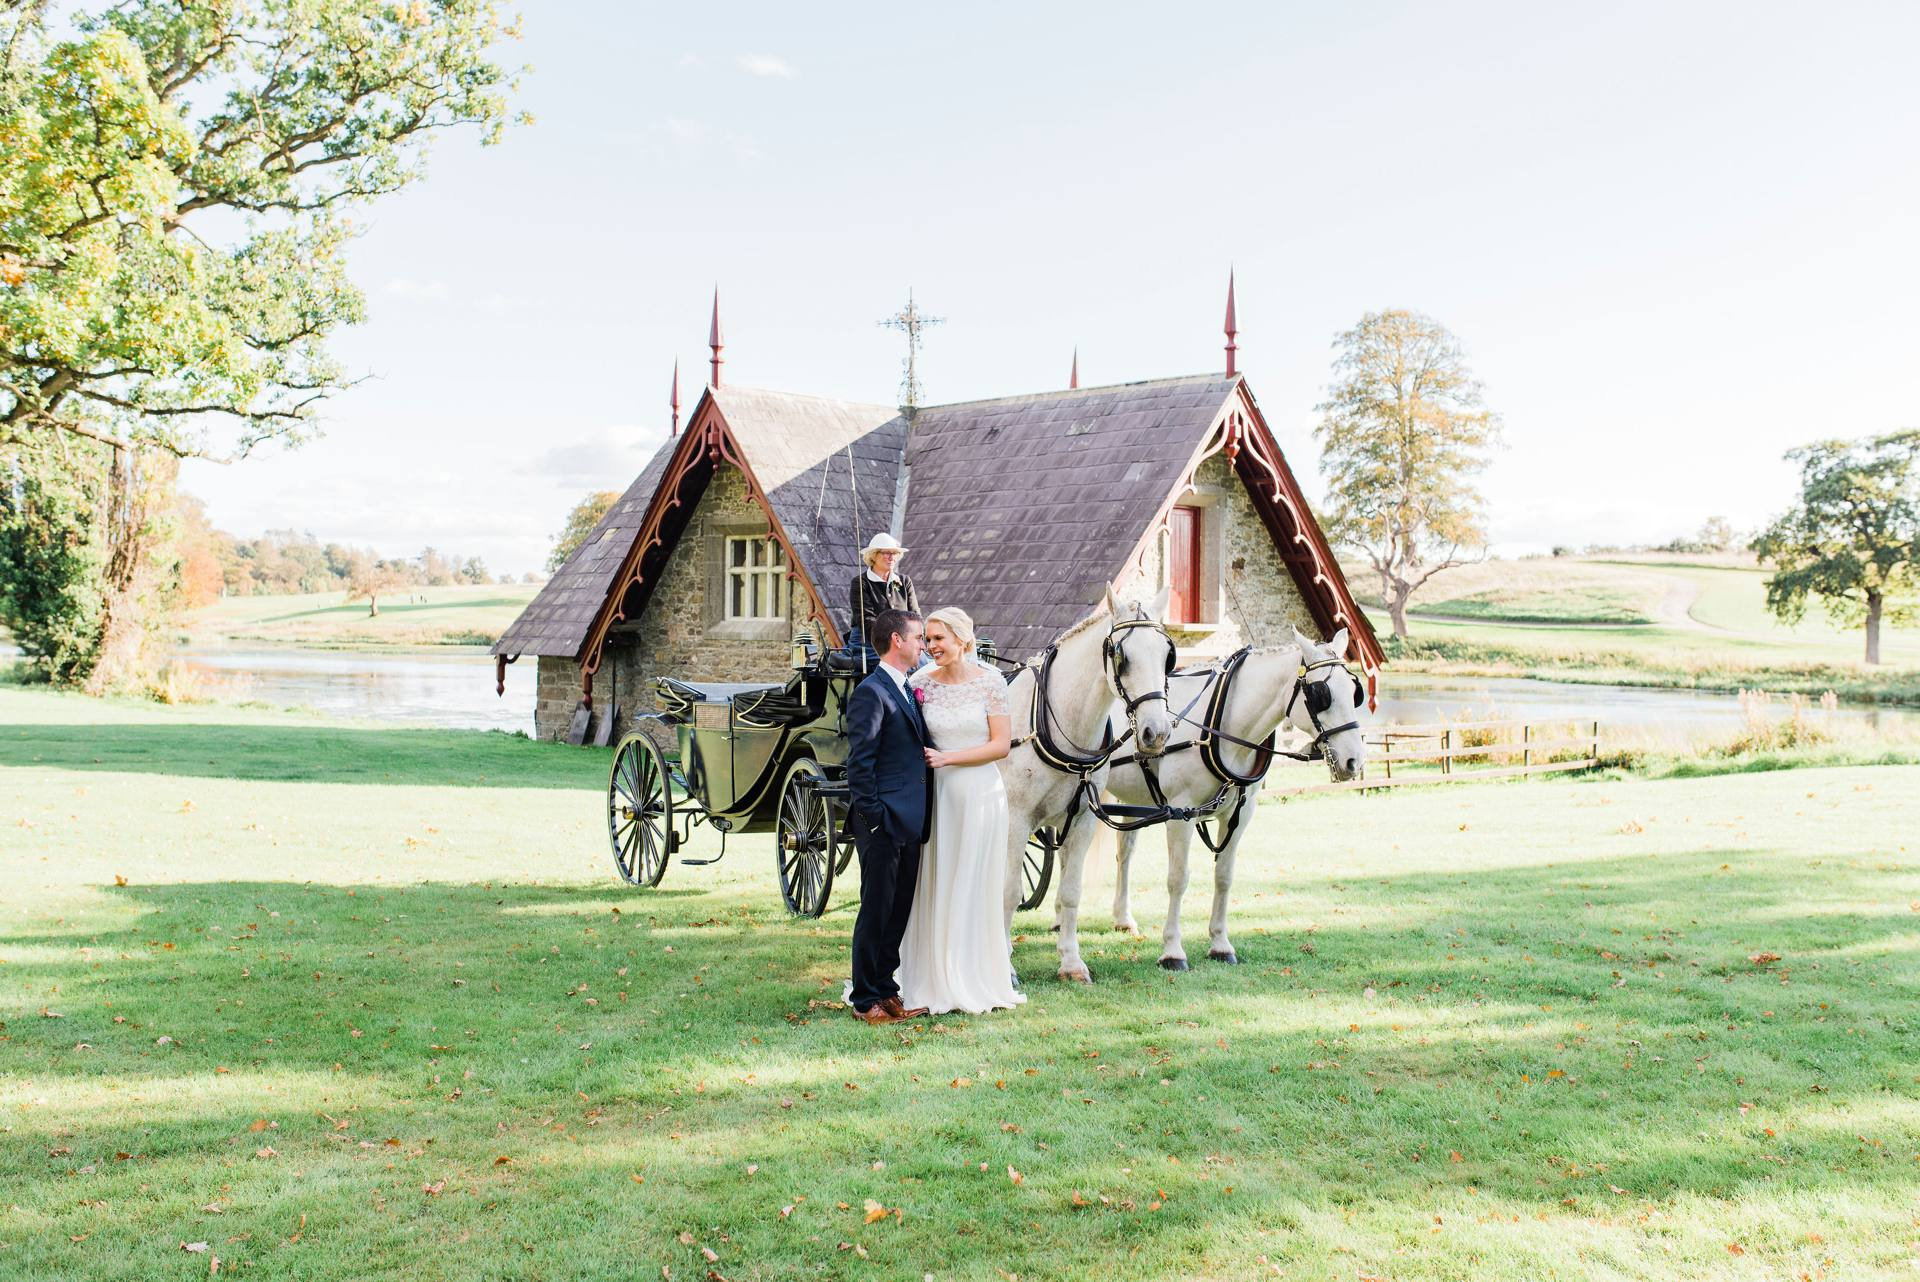 Bride and groom with horse drawn carriage beside the boat house at Carton House